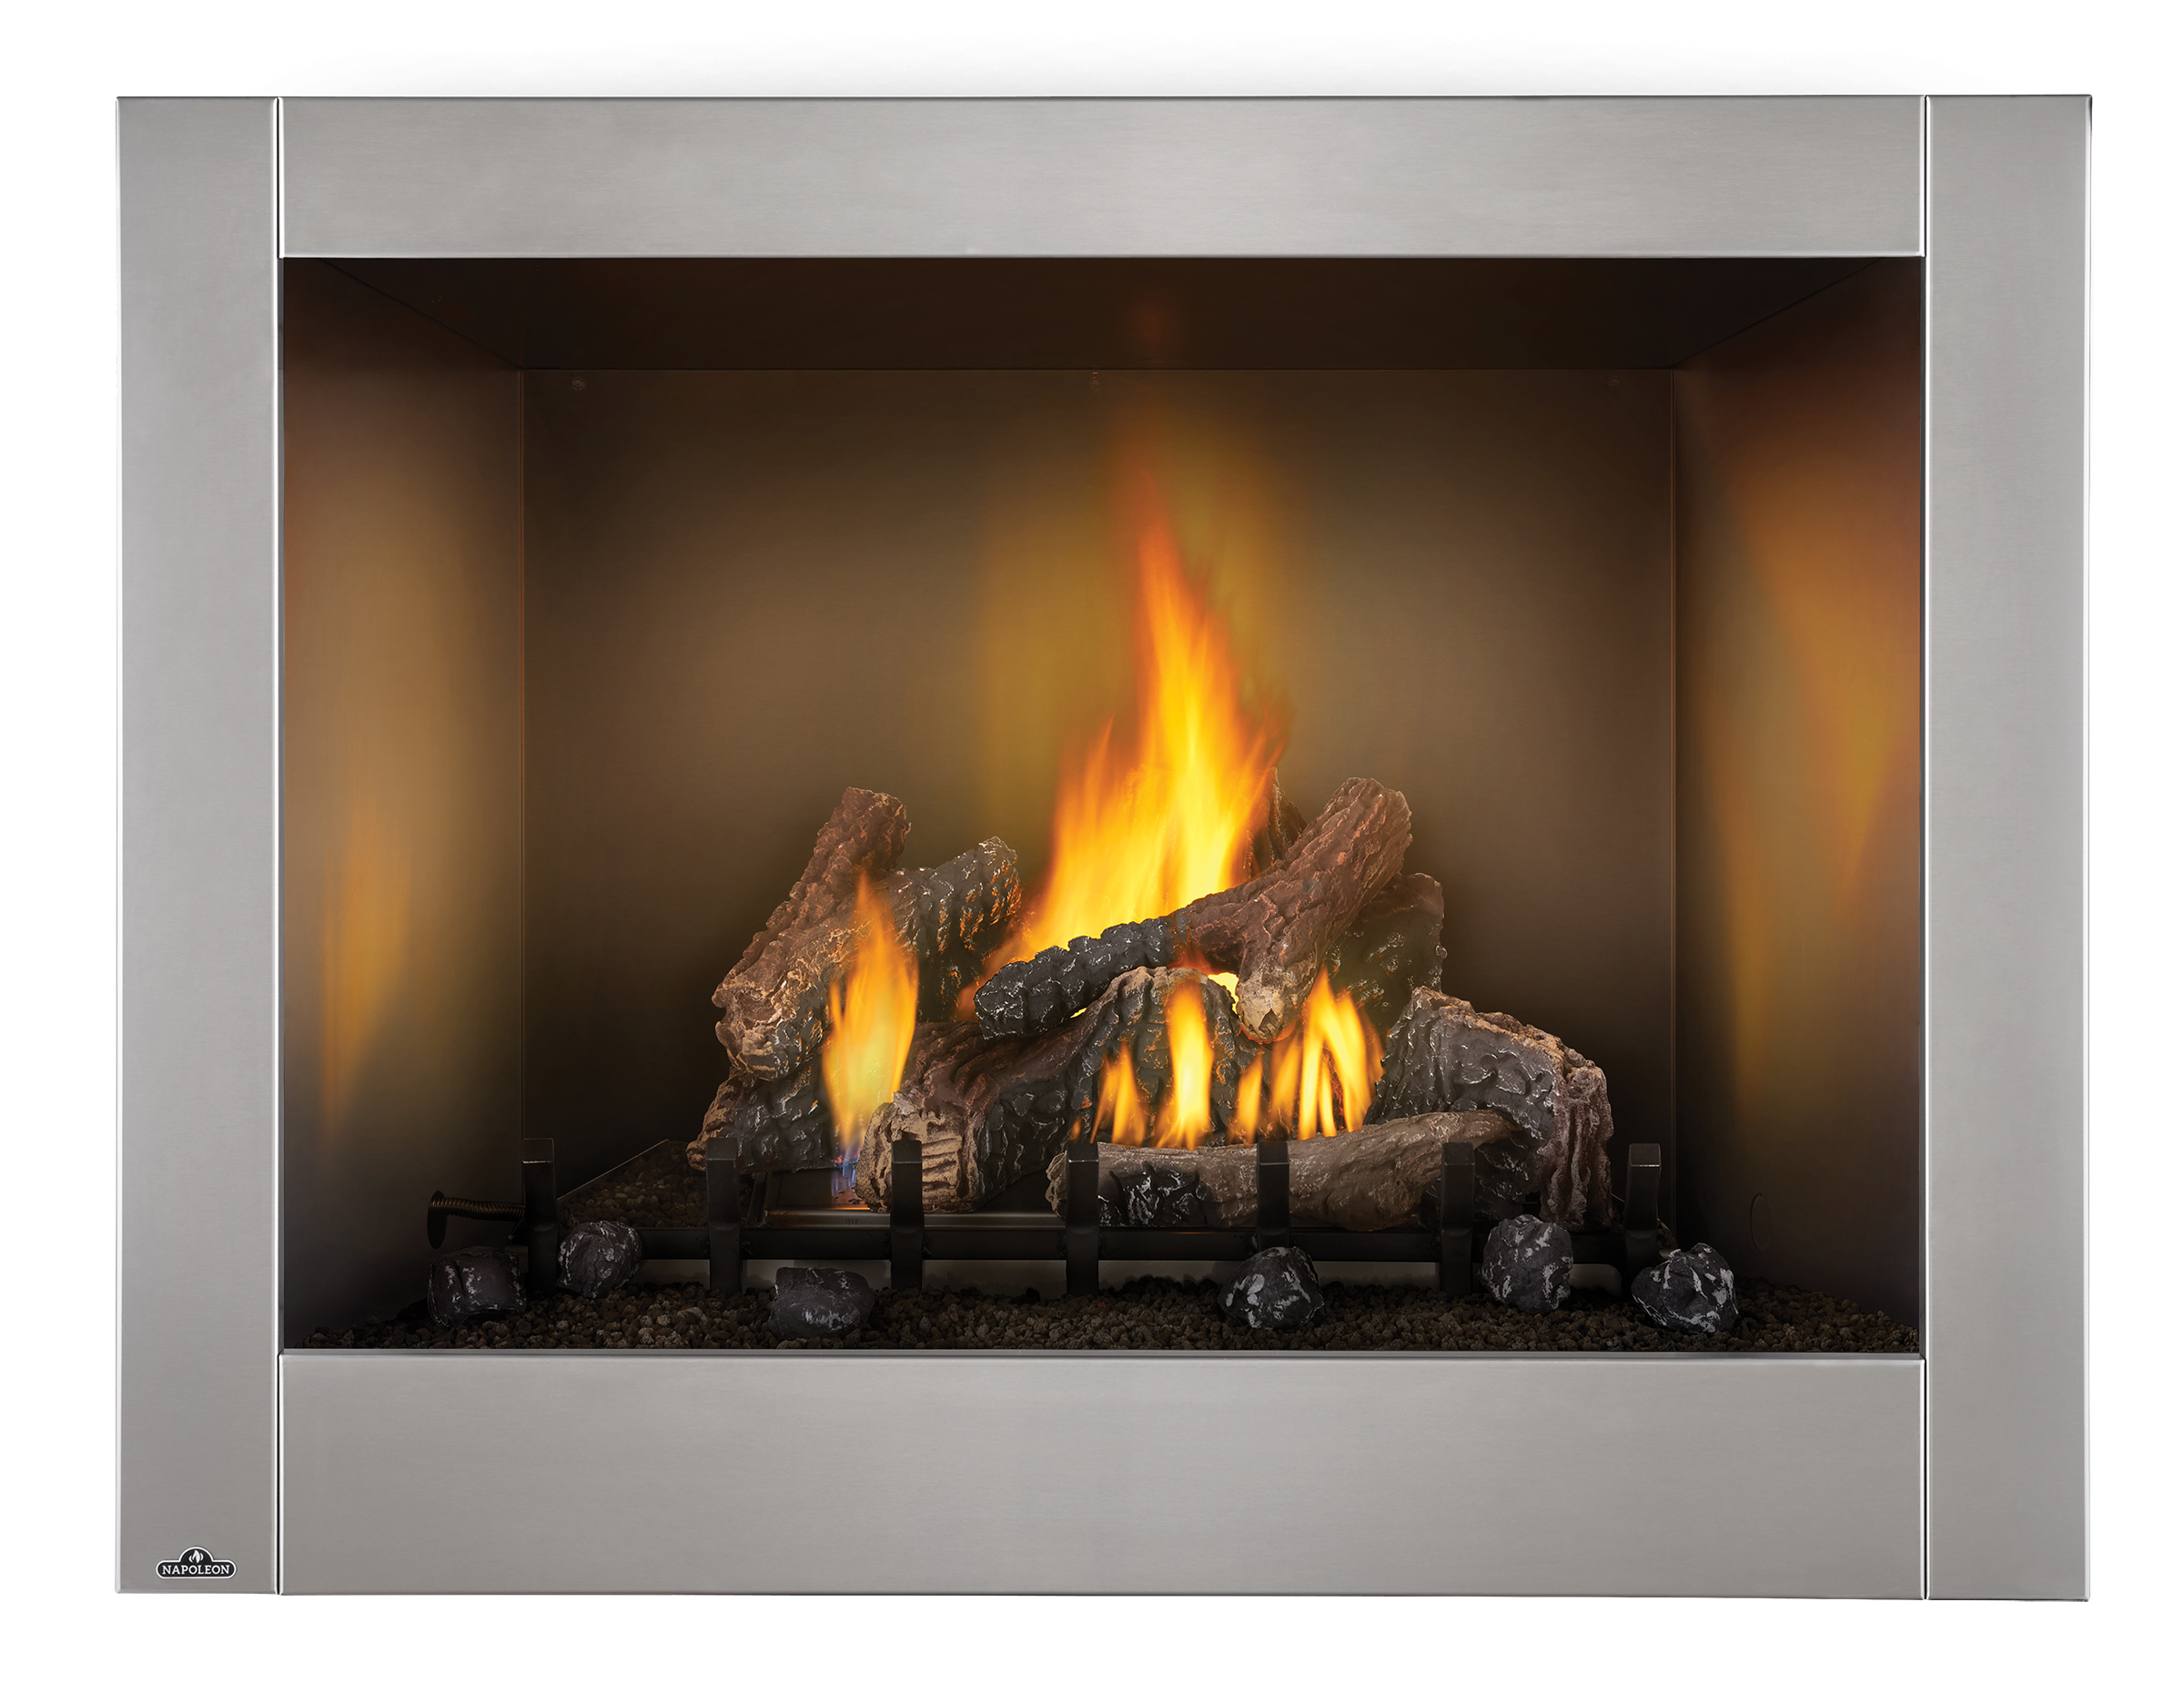 decorative wall logs me decor decorating mantel large sougi fireplace above